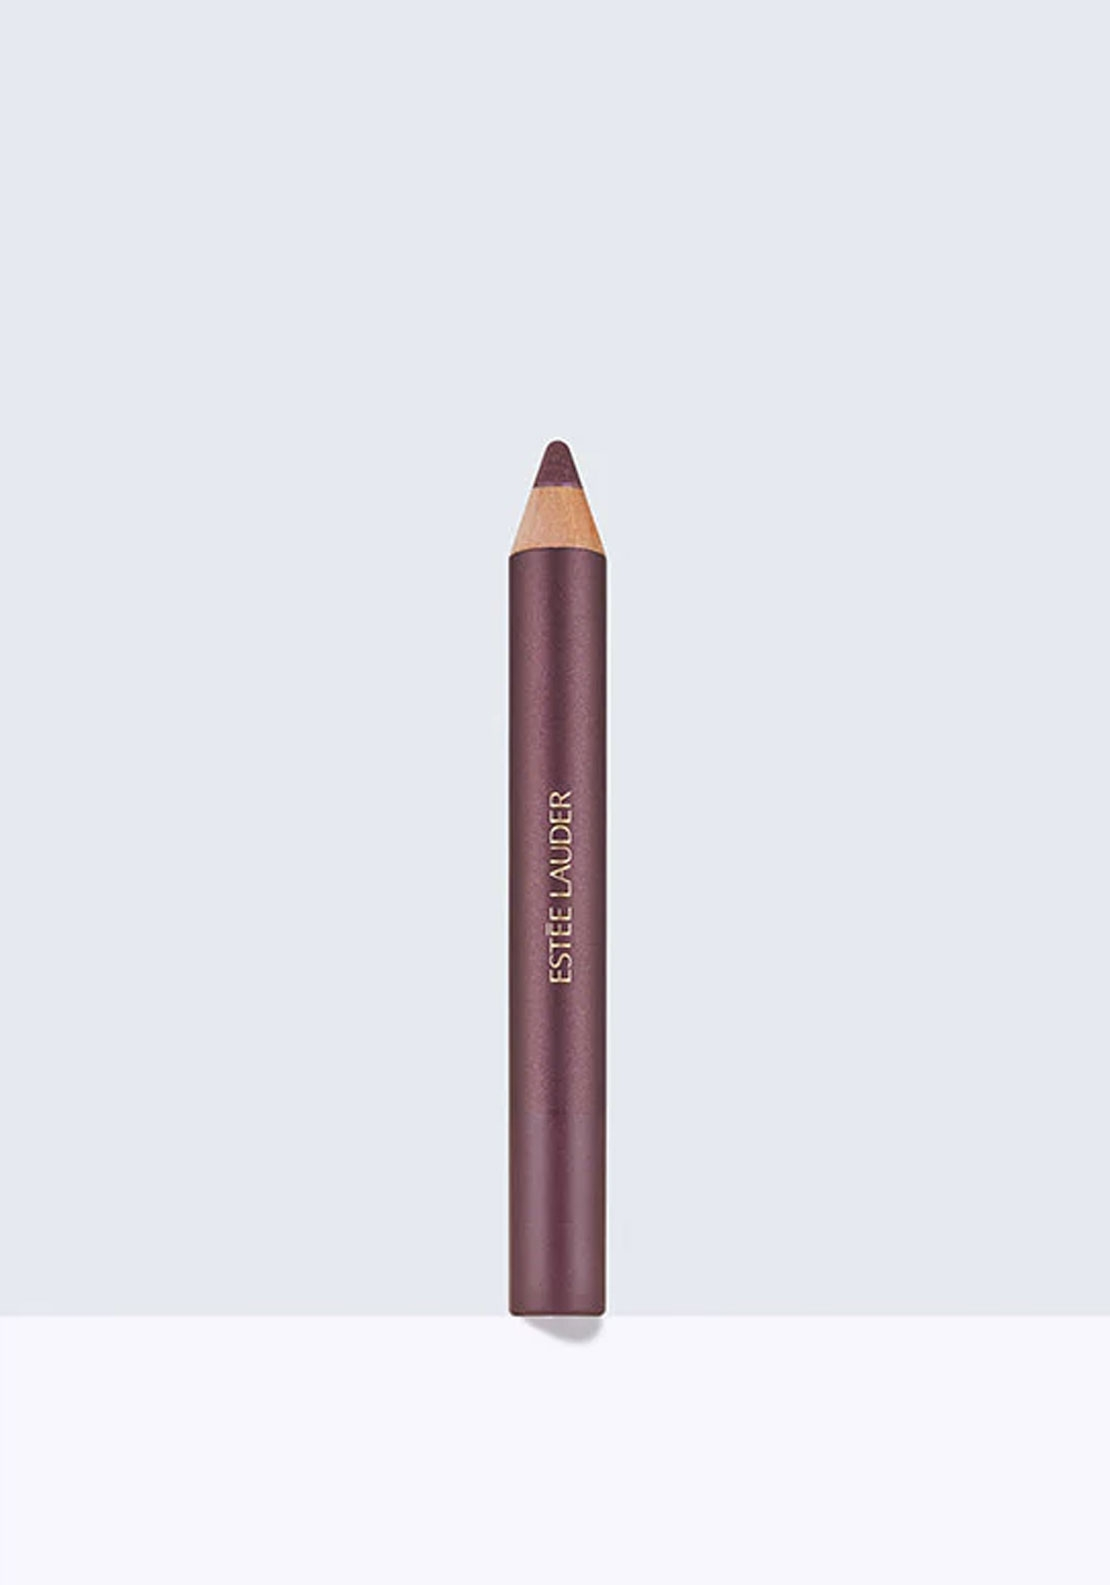 Estee Lauder Magic Smoky Eye Shadow Stick, Charred Plum